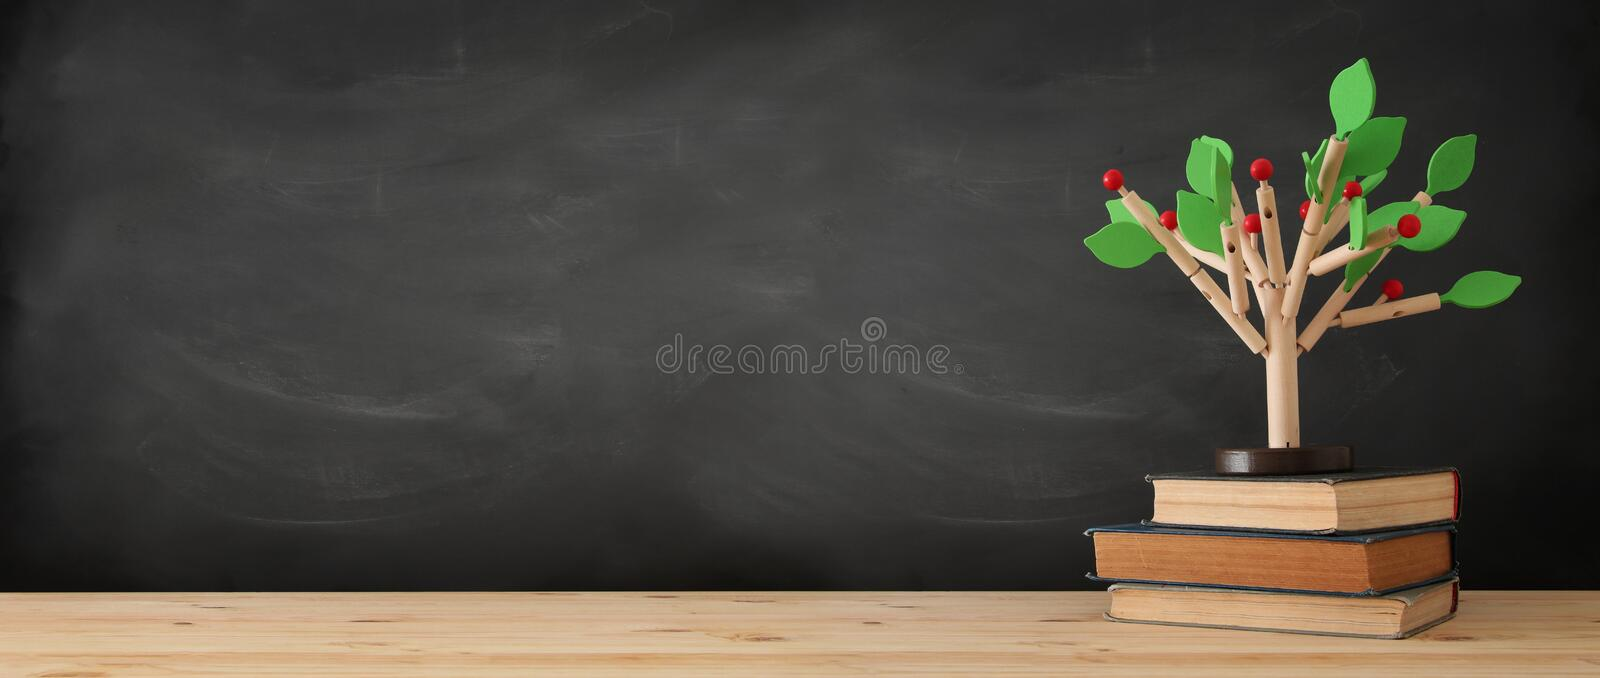 banner of open book and wooden tree puzzle over blackboard background. education and knowledge concept. stock photos